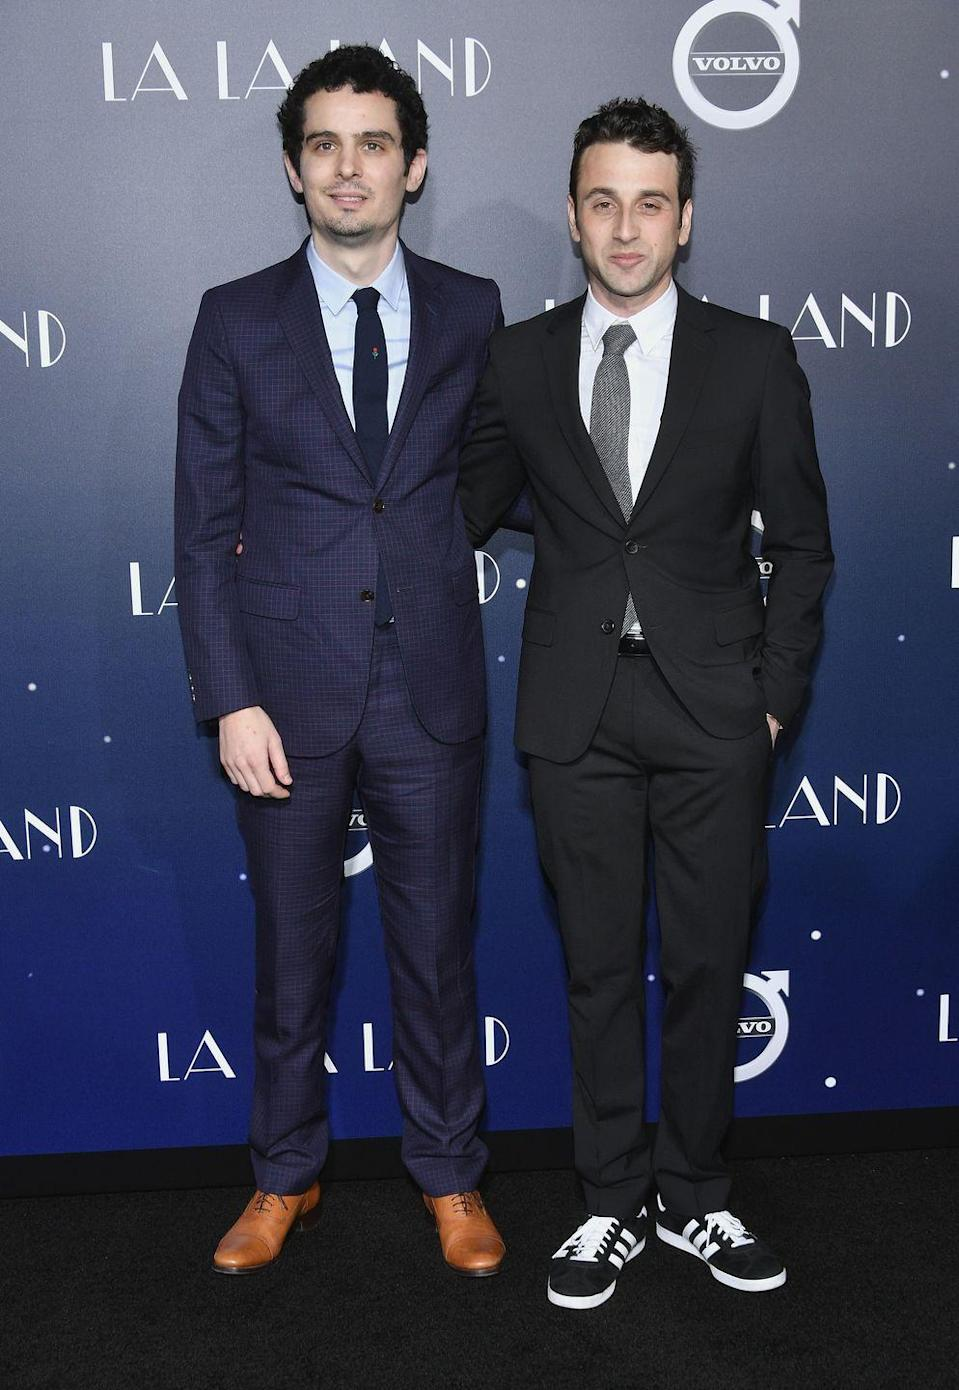 """<p><em>La La Land</em> director Damien Chazelle and music composer Justin Hurwitz were roommates in college. According to <a href=""""http://variety.com/2016/artisans/production/damien-chazelle-la-la-land-composer-1201931463/"""" rel=""""nofollow noopener"""" target=""""_blank"""" data-ylk=""""slk:Variety"""" class=""""link rapid-noclick-resp""""><em>Variety</em></a>, they became friends freshman year and went on to start a band together called Chester French during their sophomore year. The two began working on<em> La La Land </em>back in 2010.</p>"""